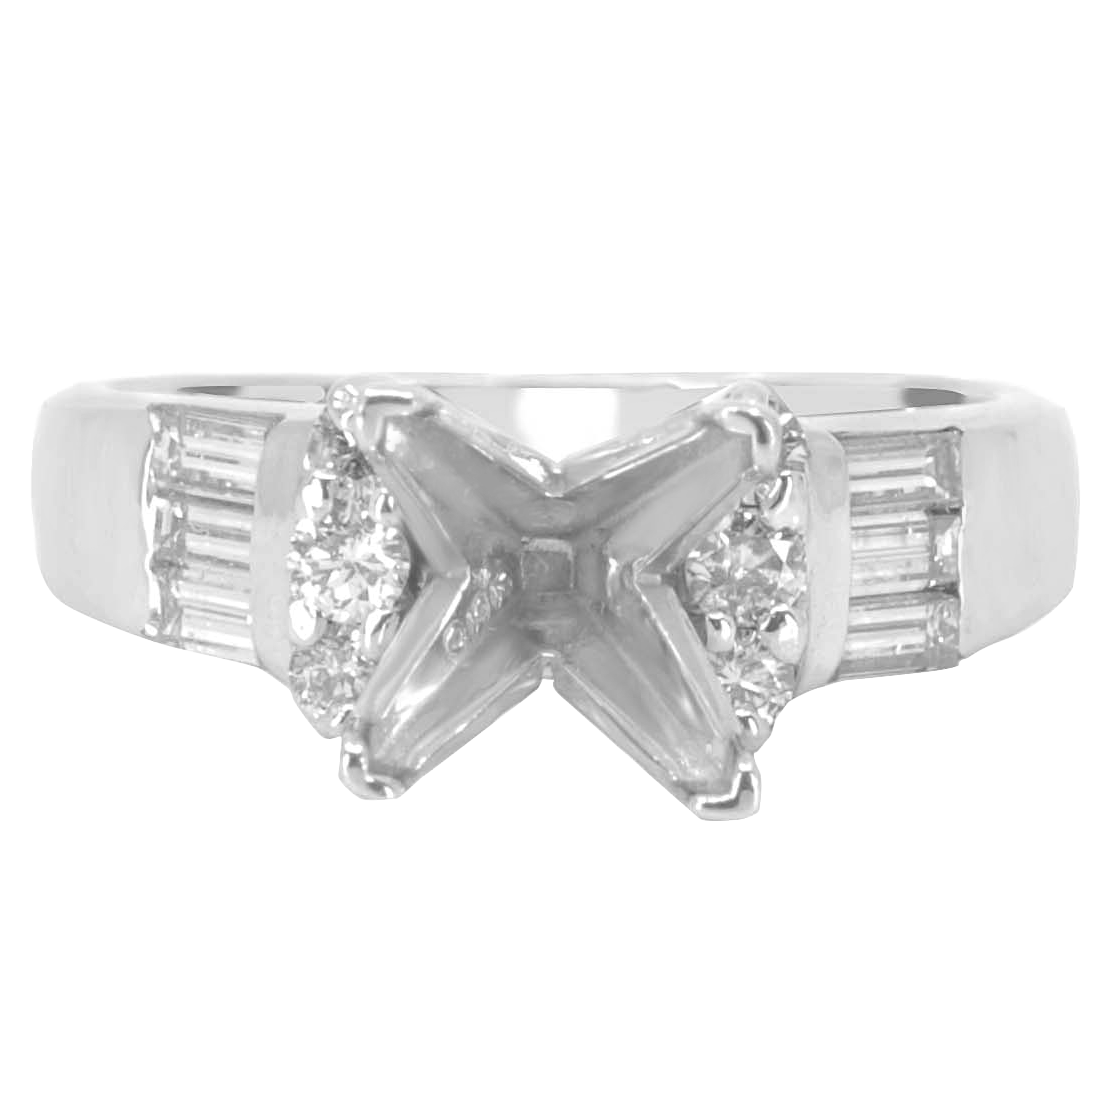 14K WHITE GOLD CATHEDRAL SEMI-MOUNTING CHANNEL SET RING